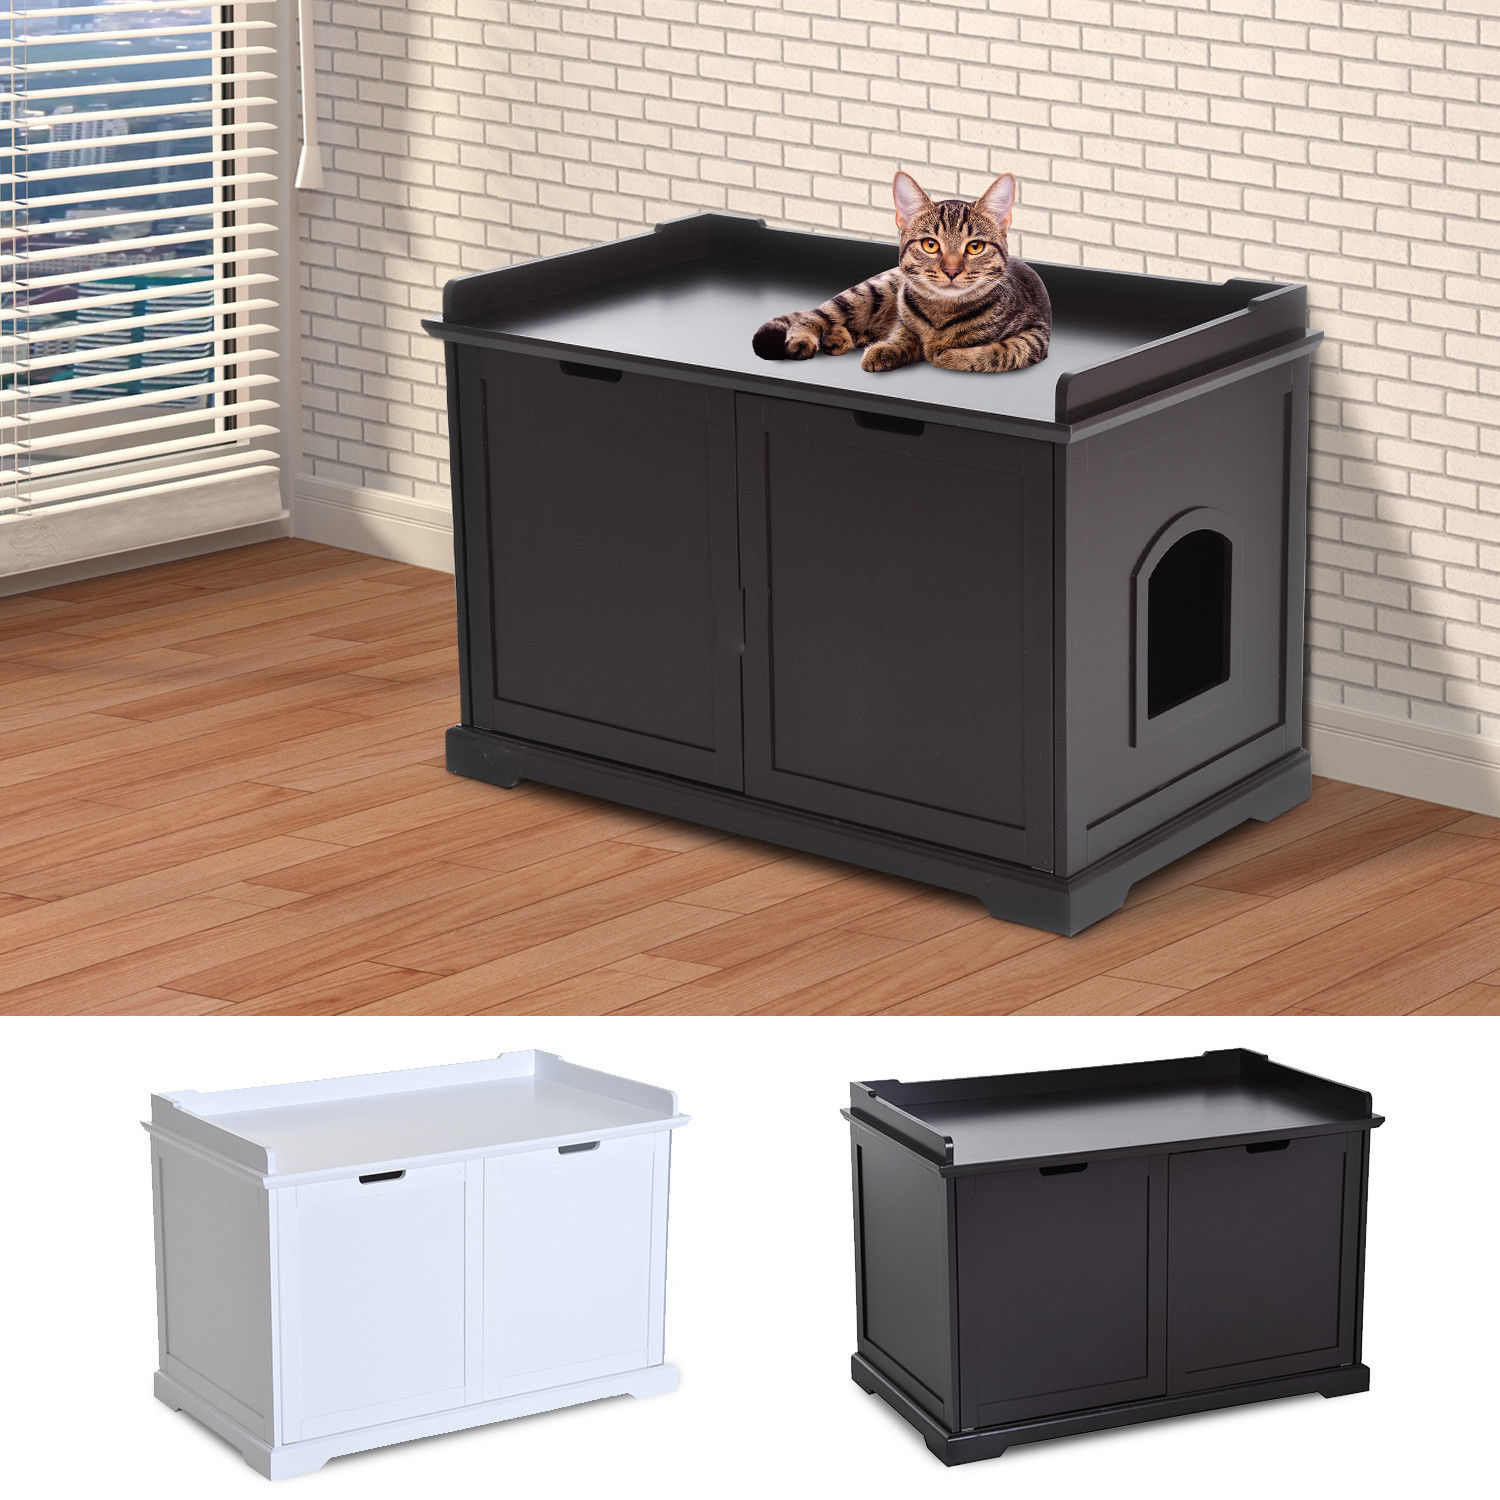 To acquire Litter cat stylish box uk picture trends